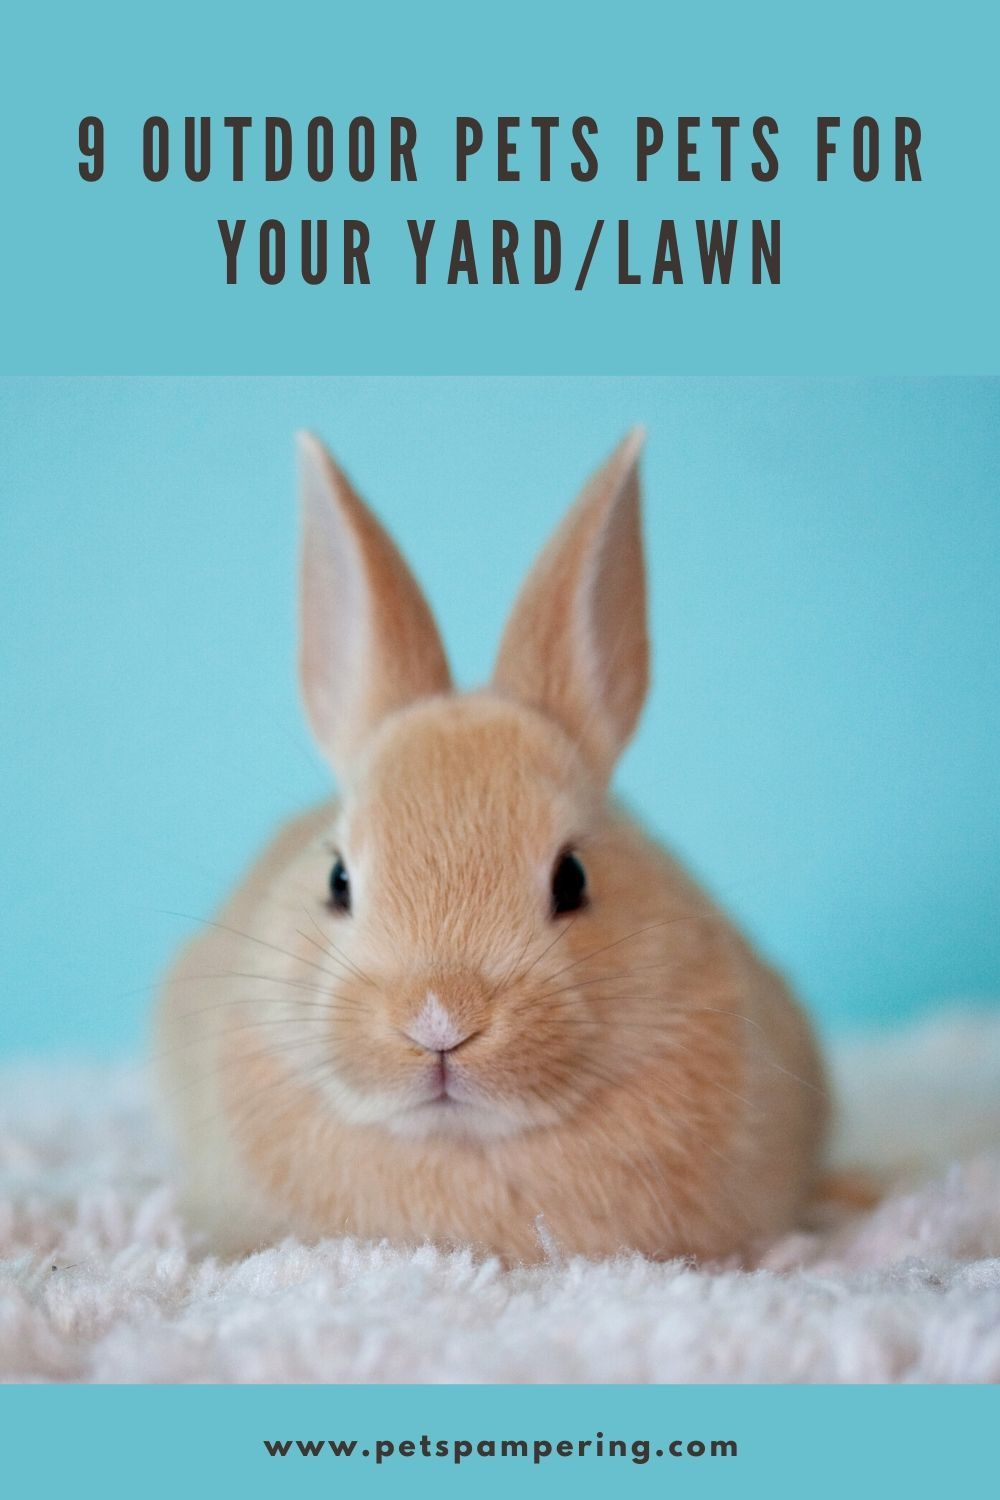 9 Outdoor Pets Pets For Your Yard Lawn In 2020 Animals Pets Rabbit Bedding